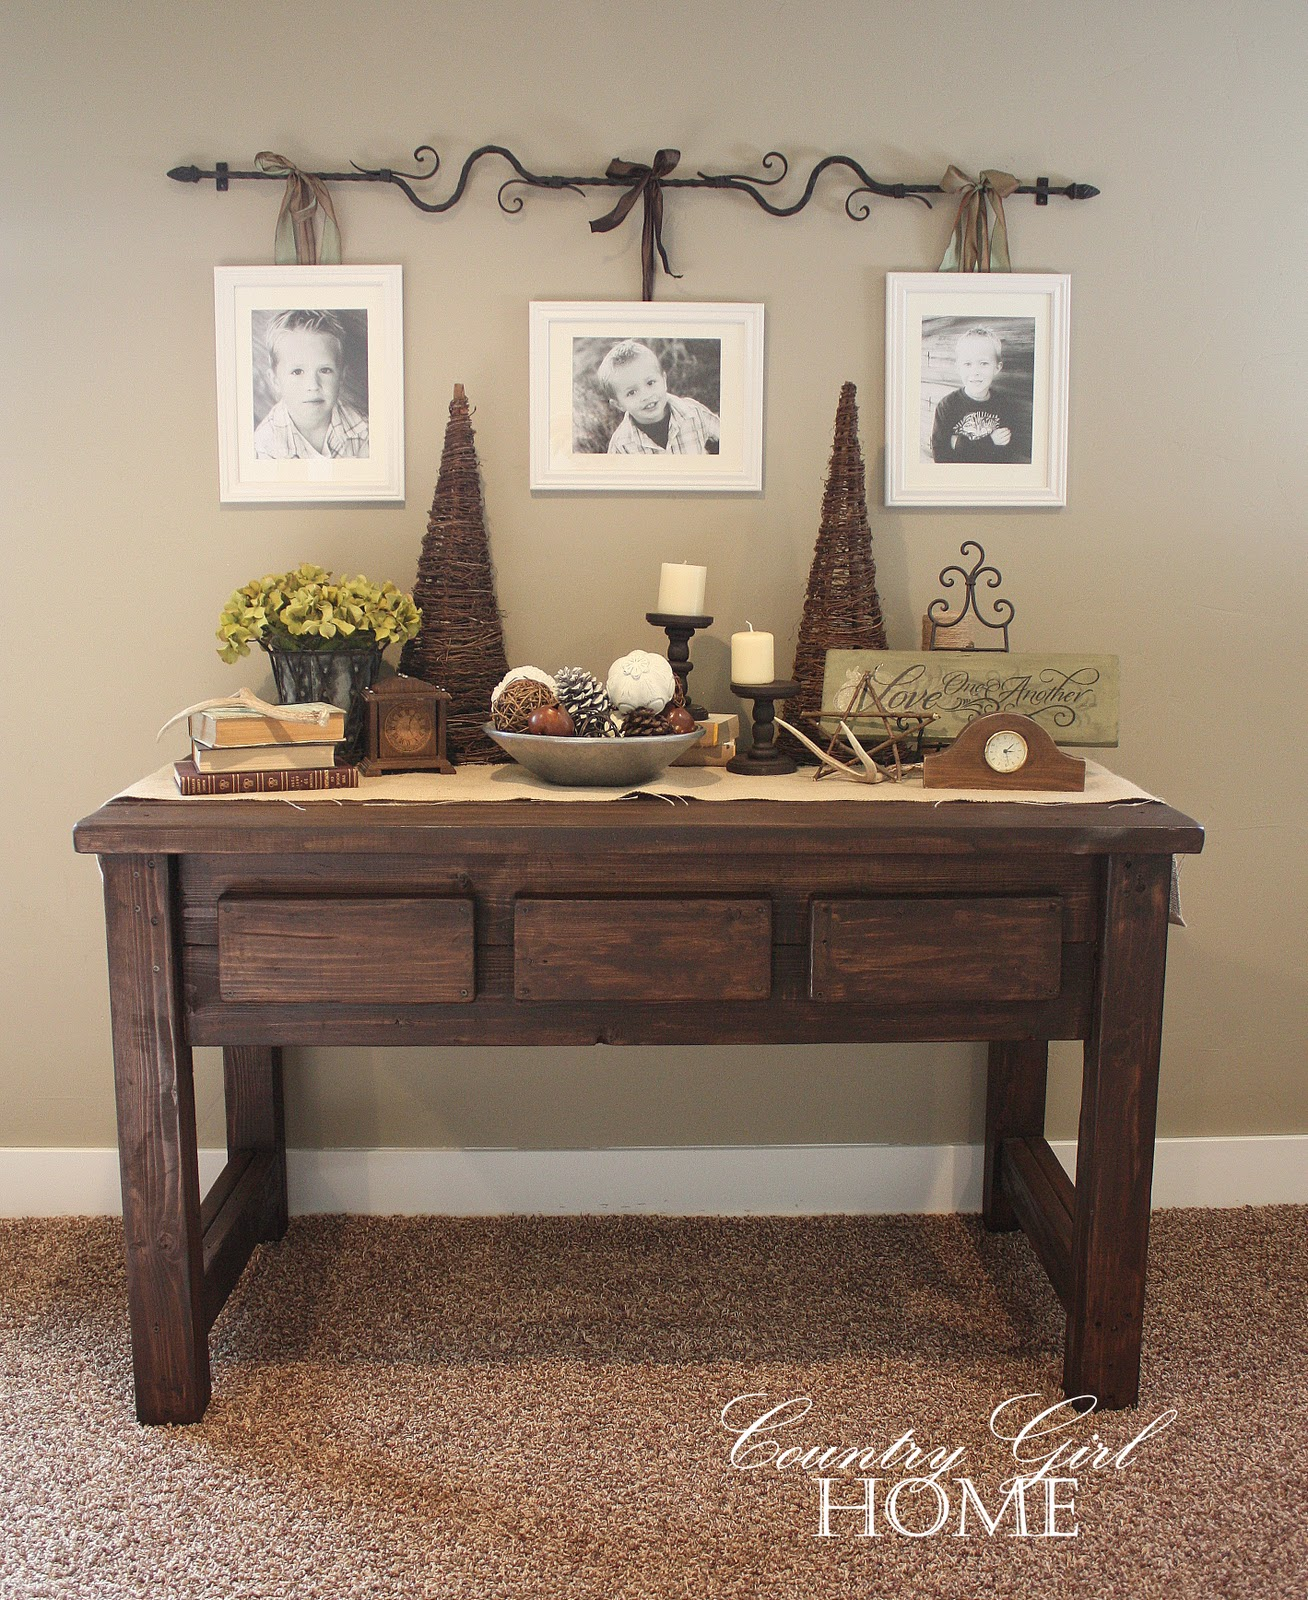 Pinterest Home Decorating Ideas: COUNTRY GIRL HOME : A Few Things I Built